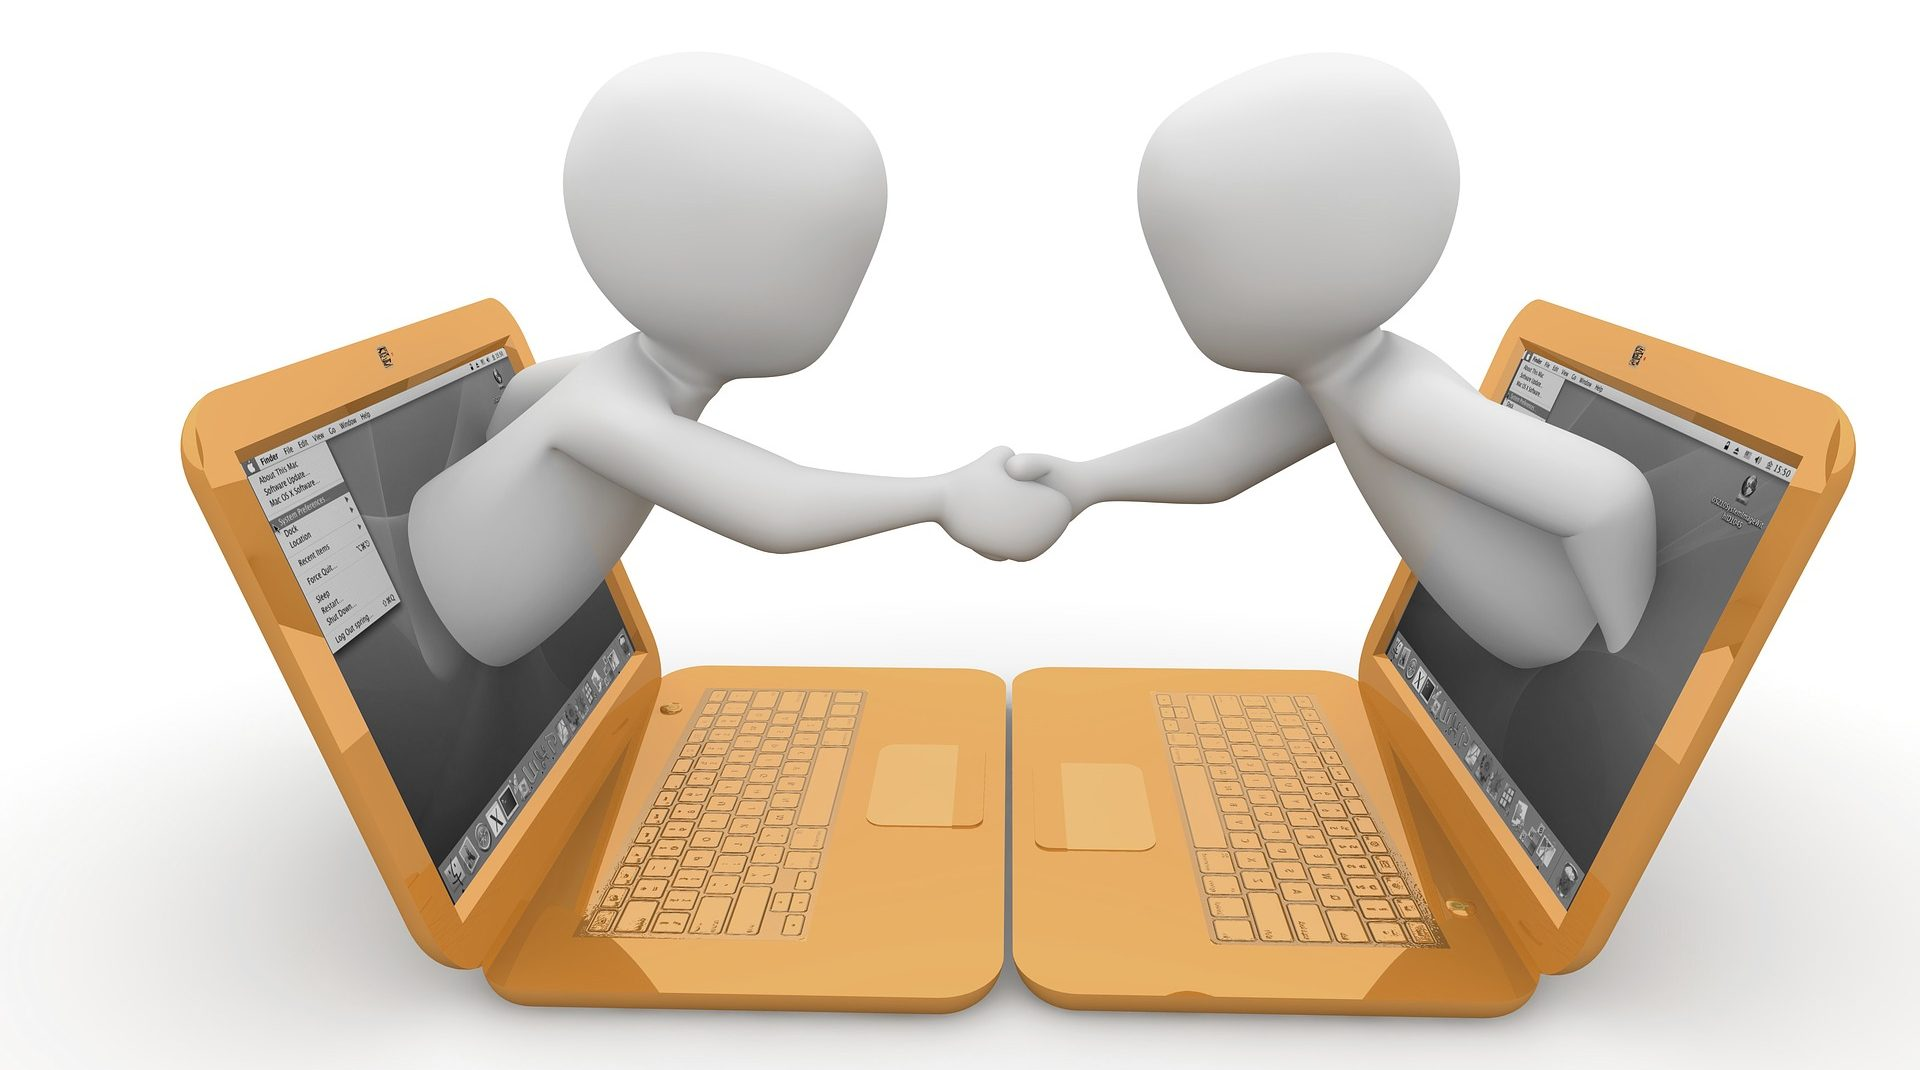 An image showing two humanoid figures shaking hands emerging from two laptops